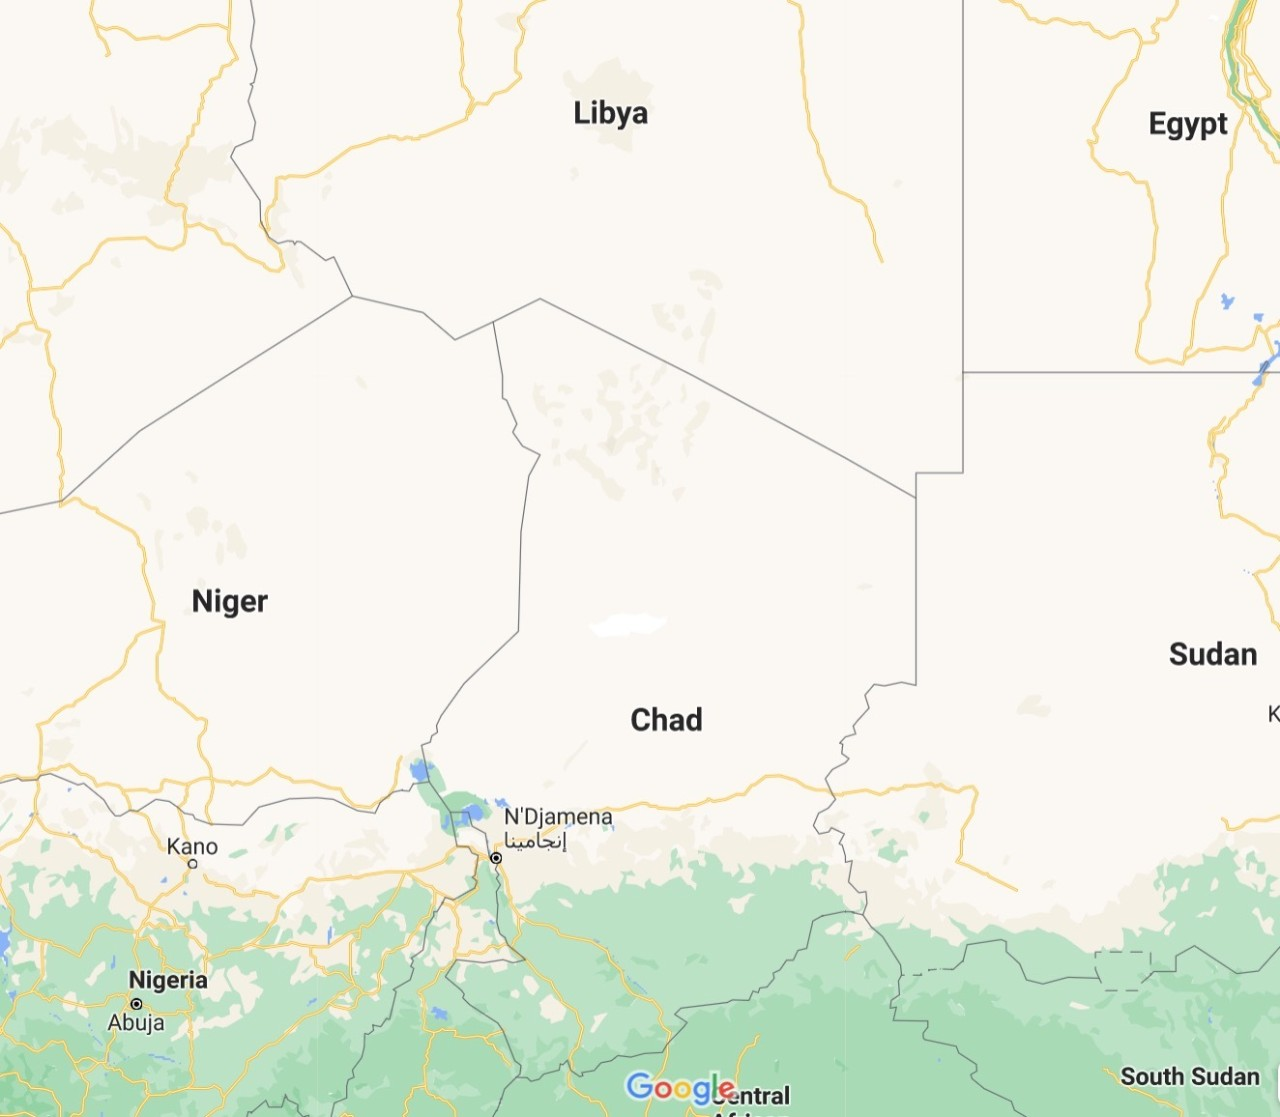 Map of Chad and Libya. (Google Maps)